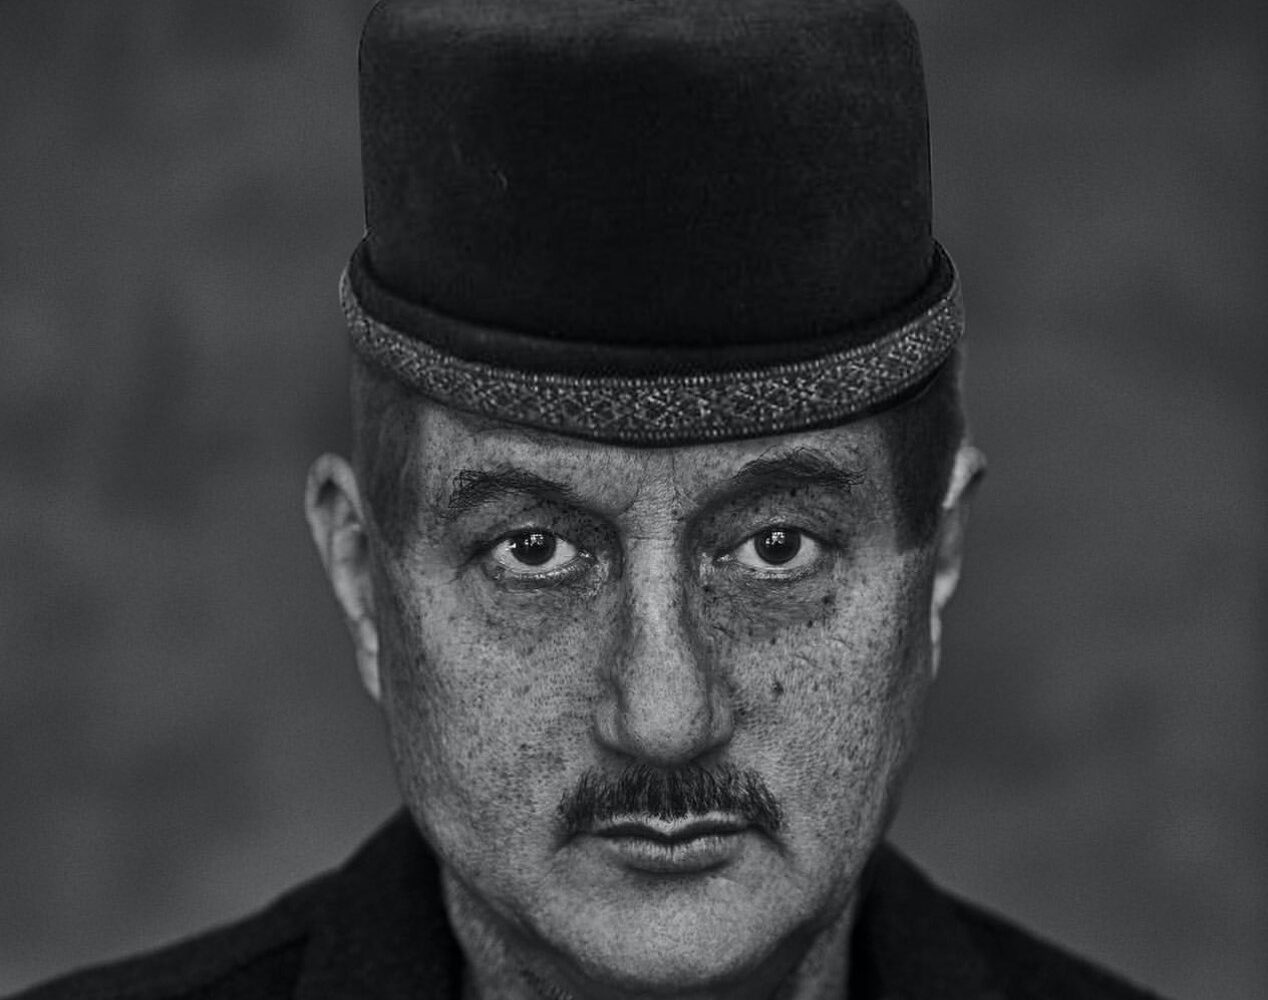 Anupam Kher bags 'Best Actor Award' at NYCIFF for 'Happy Birthday'